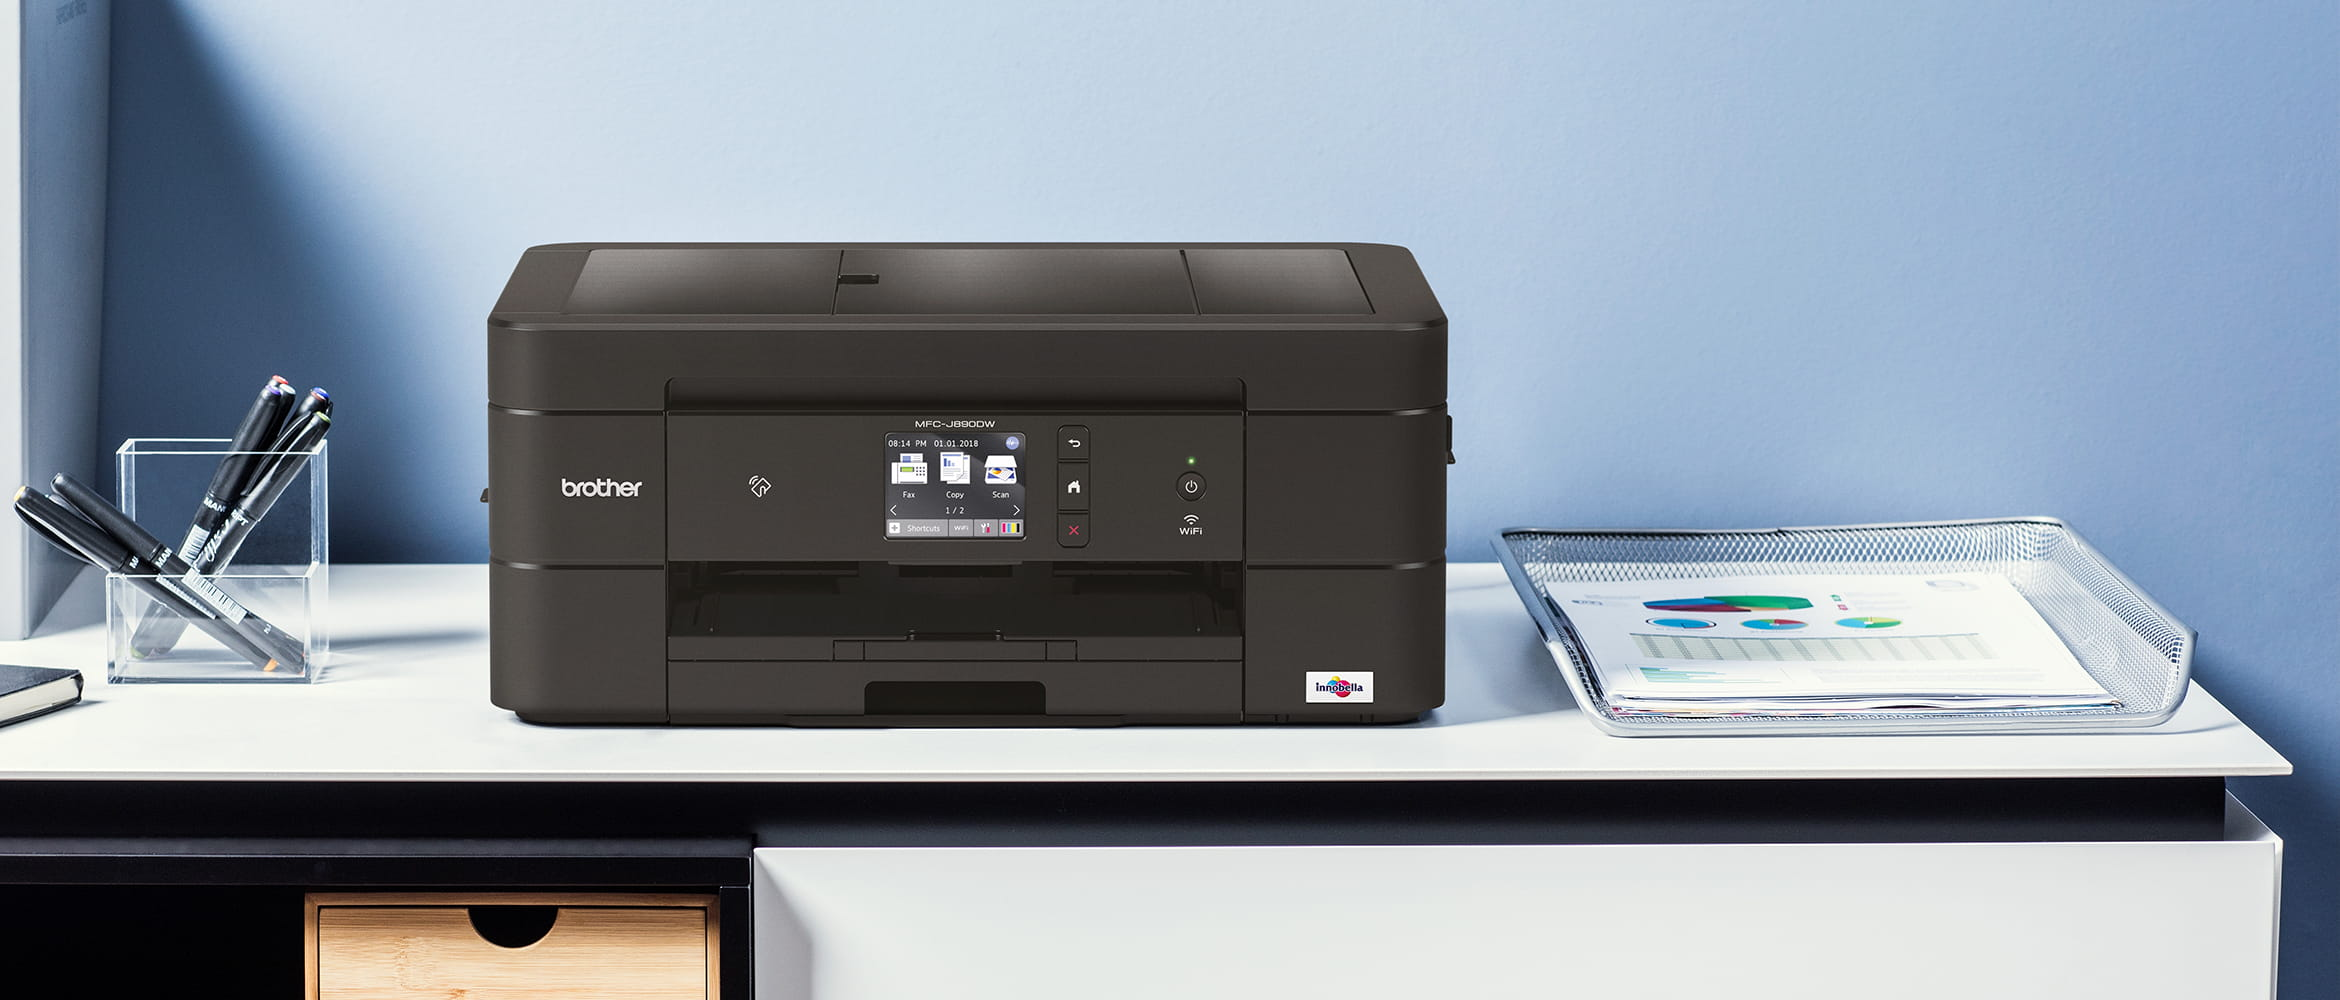 Impresora multifunción tinta MFC-J890DW de Brother